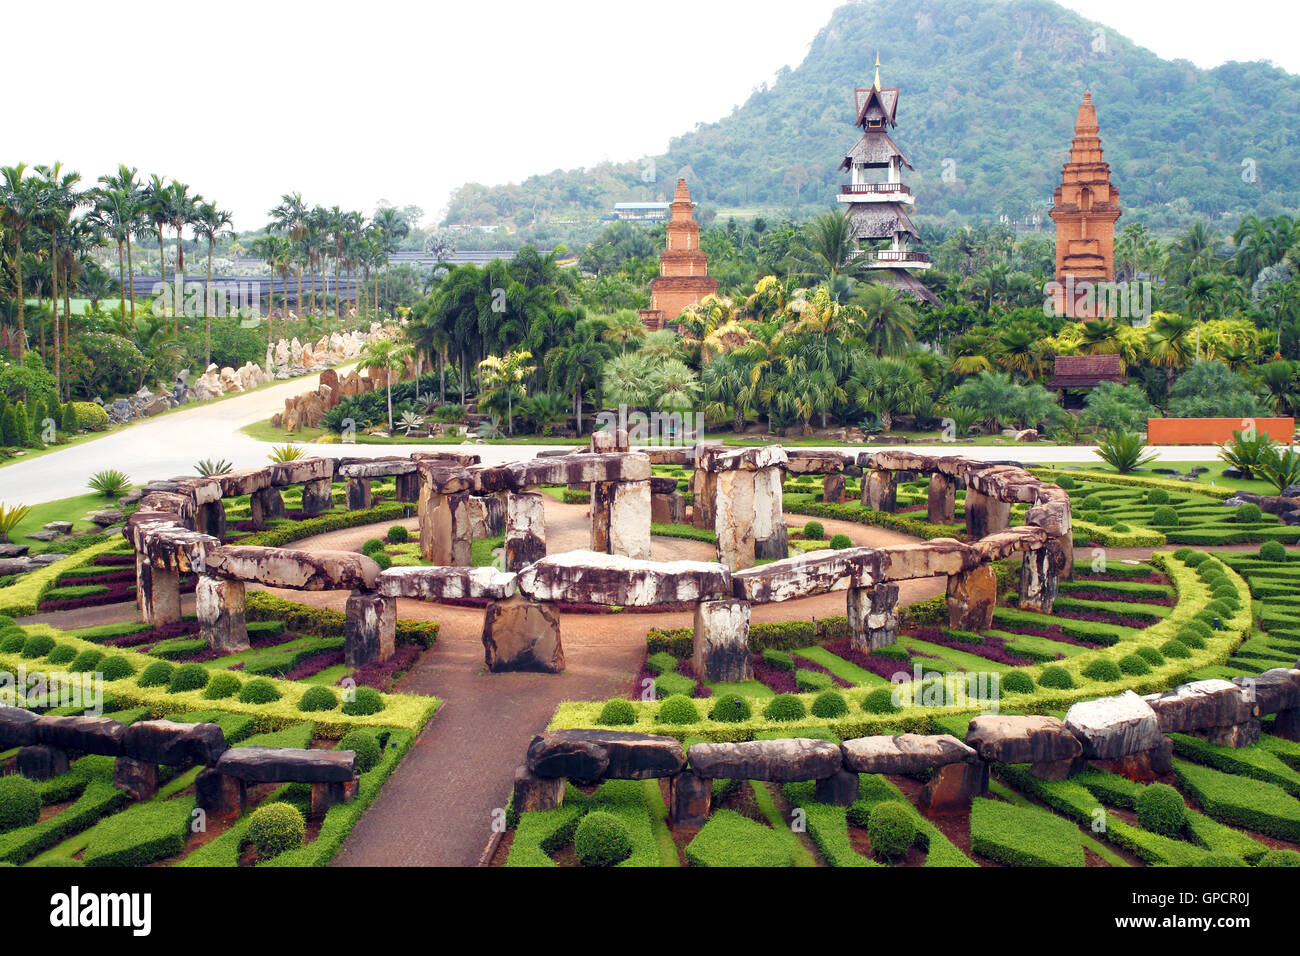 Park nong nooch in Thailand, shrubberies grow in geometric figur - Stock Image